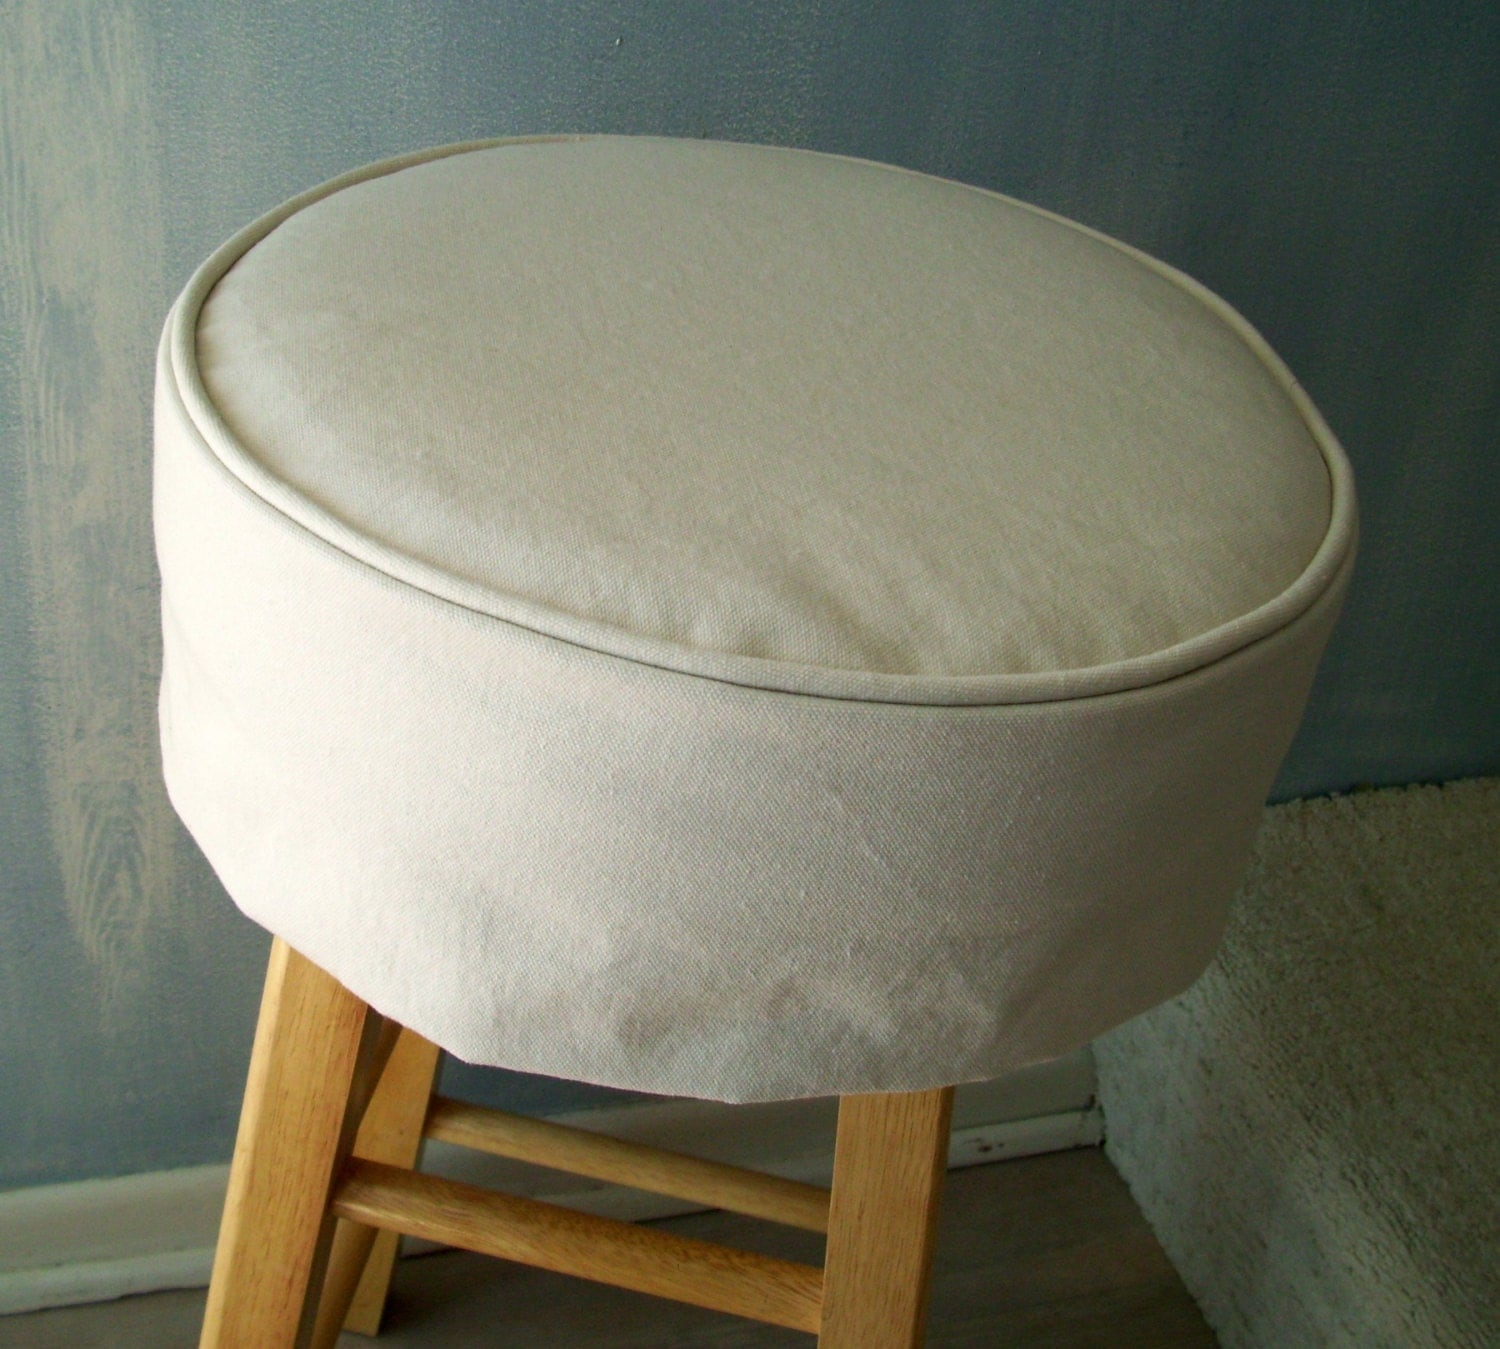 Ivory Bar Stool Cushion Round Barstool Slipcover with : ilfullxfull5732070958uwd from www.etsy.com size 1500 x 1349 jpeg 393kB